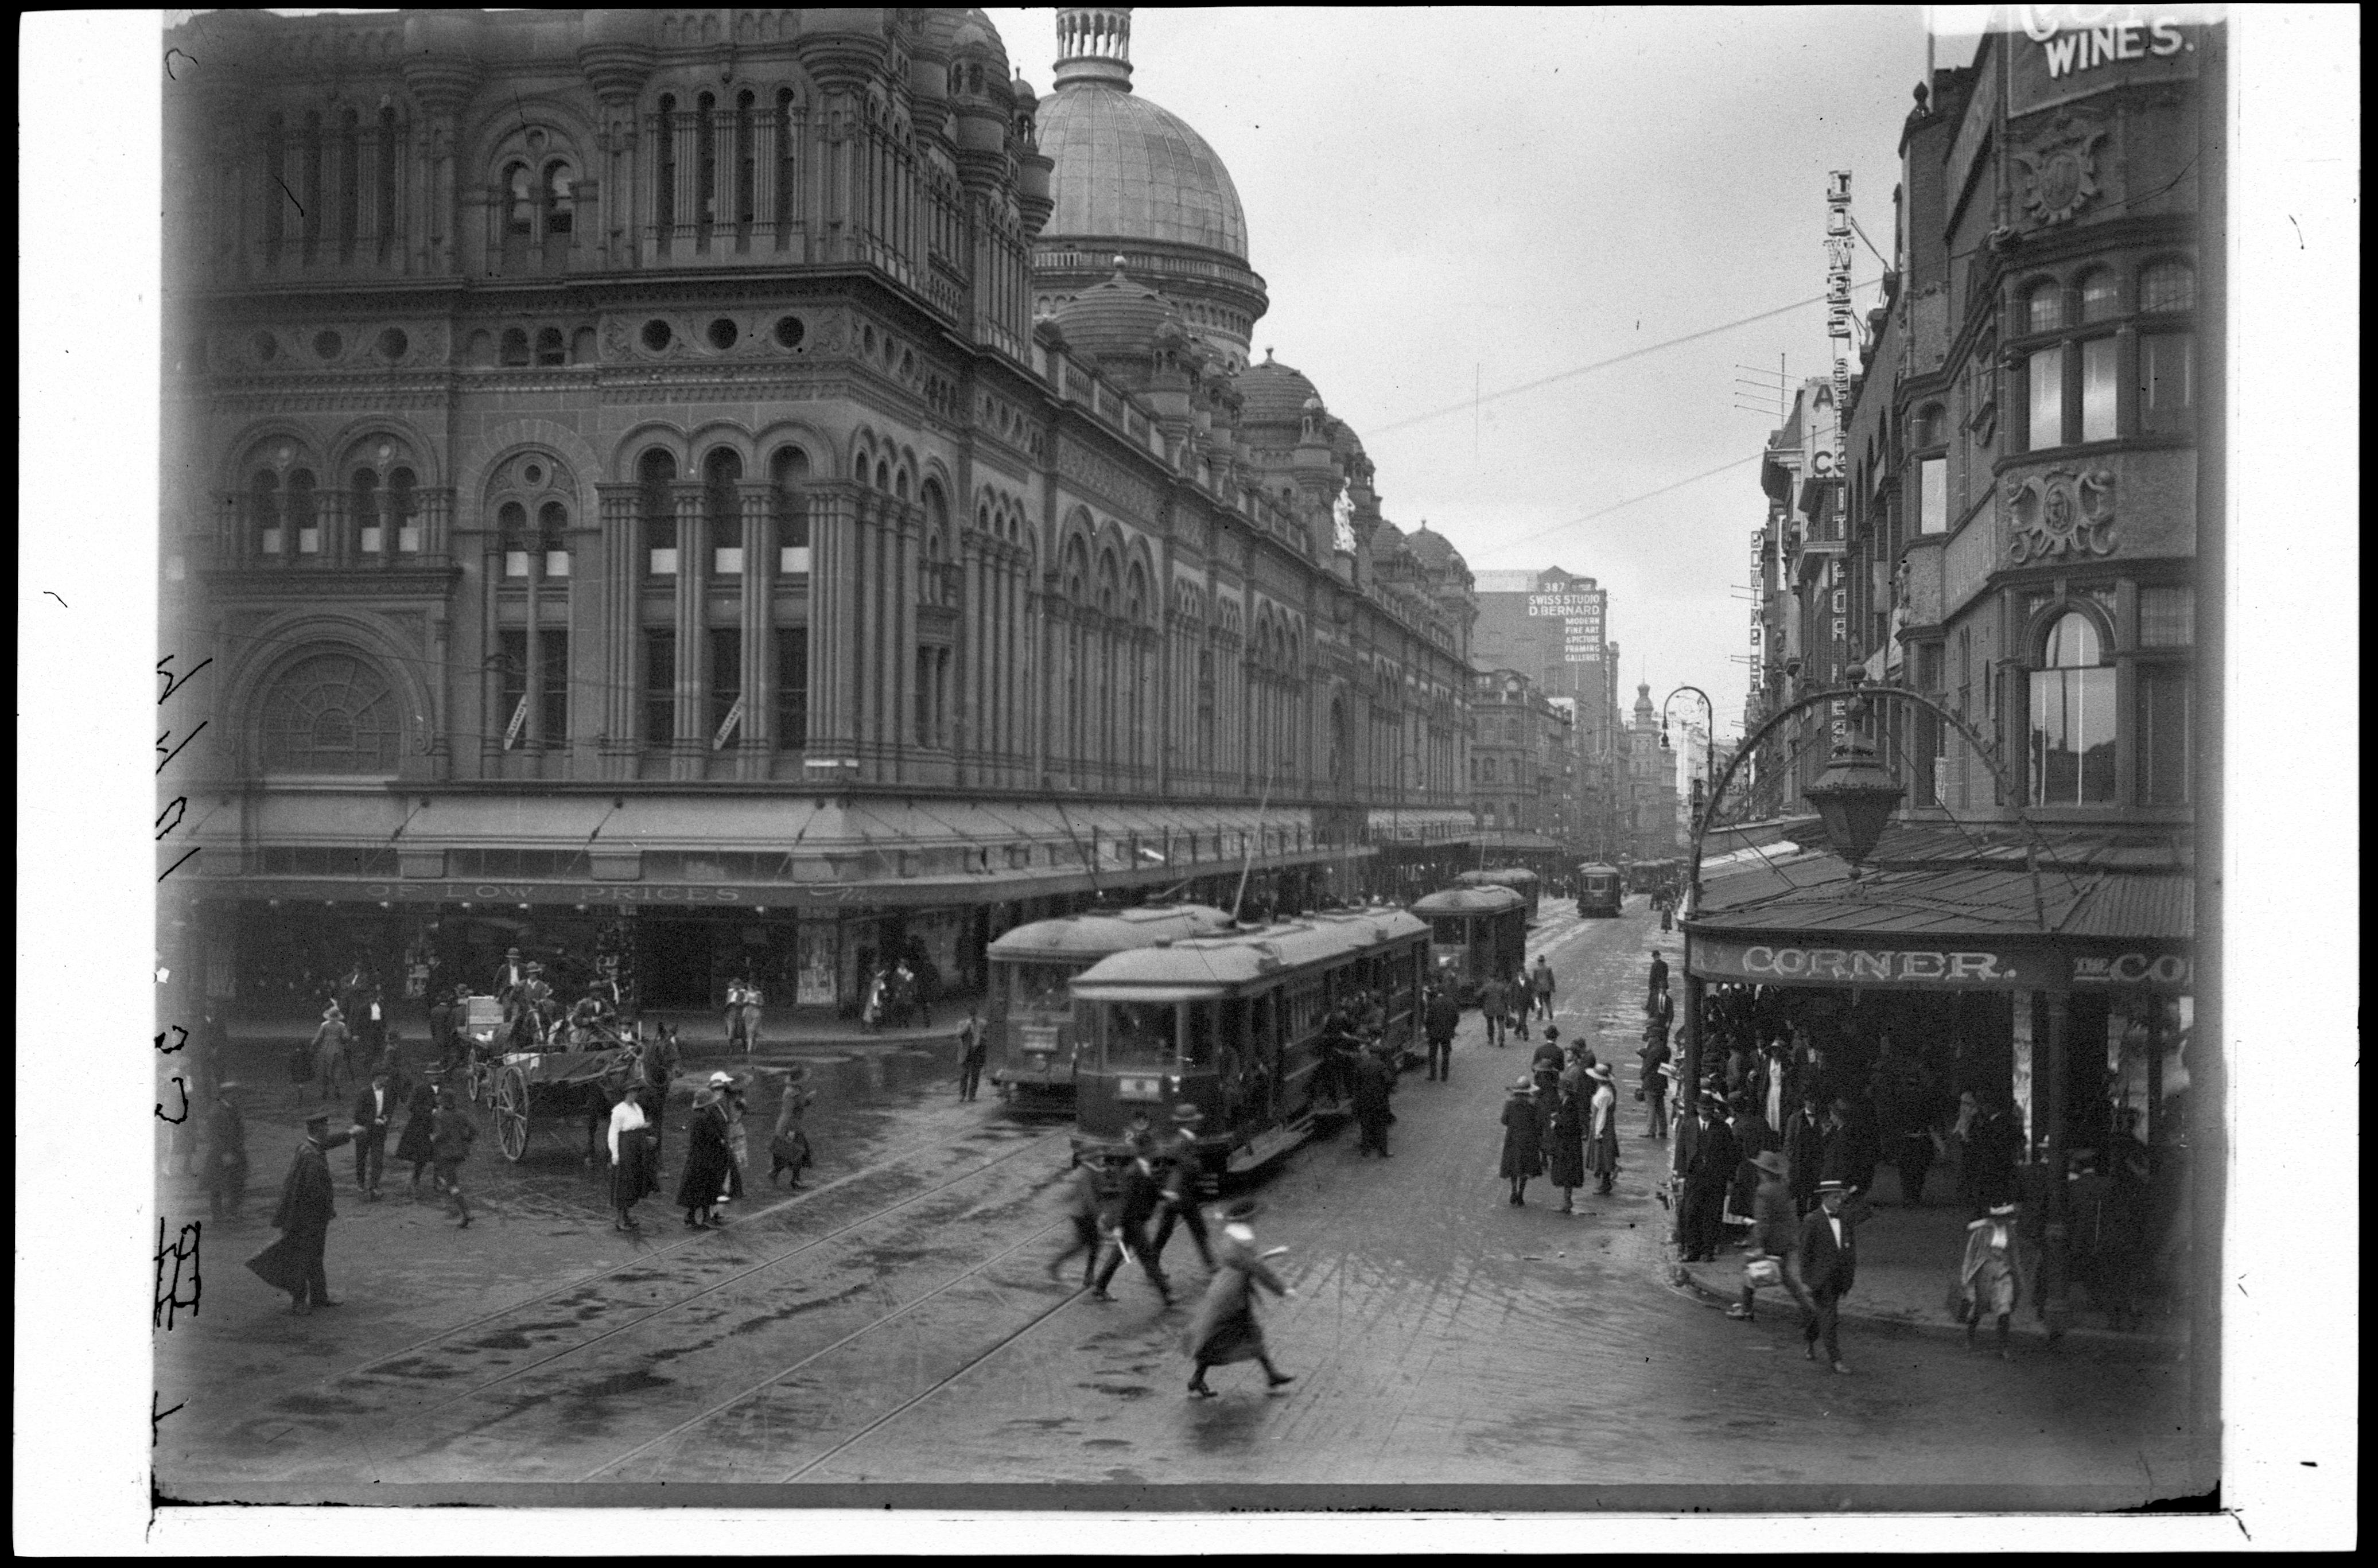 Queen Victoria Buildings, looking down George St, n.d. / unknown photographer